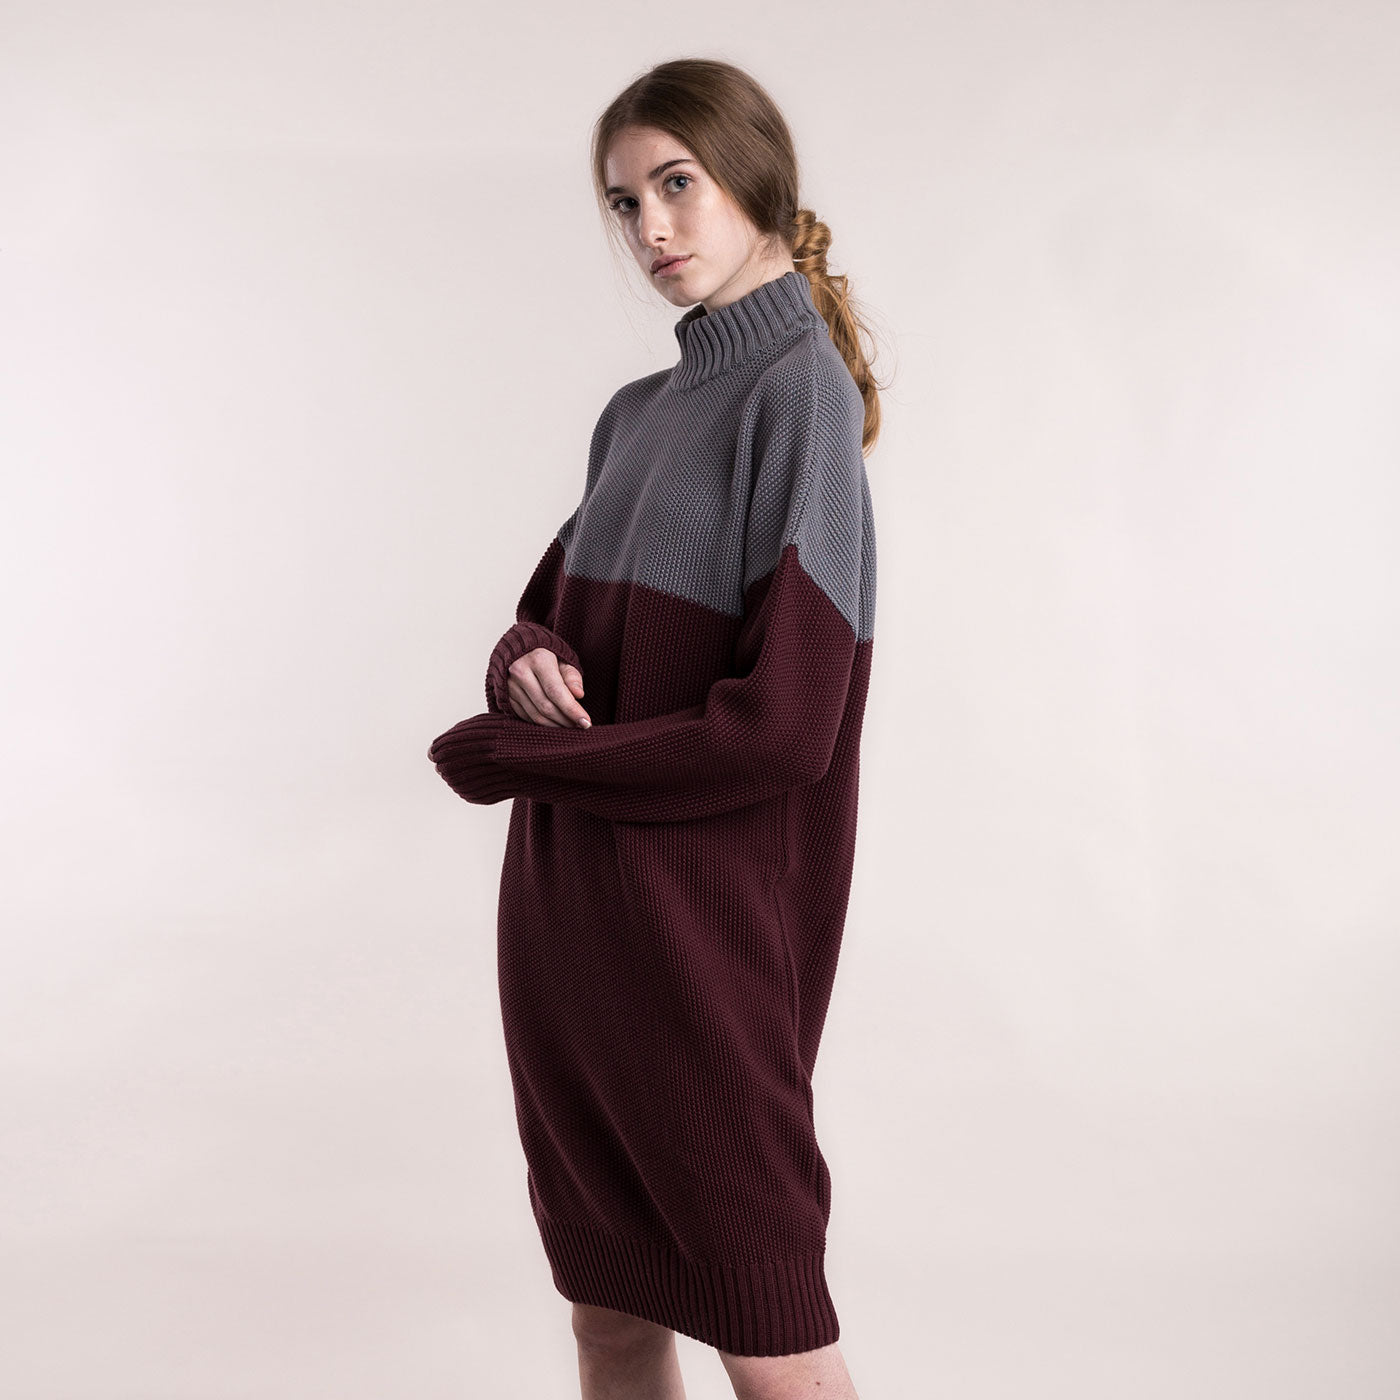 The model wears a grey and burgundy, sustainable organic cotton, knitted double-colour dress, side view close up.